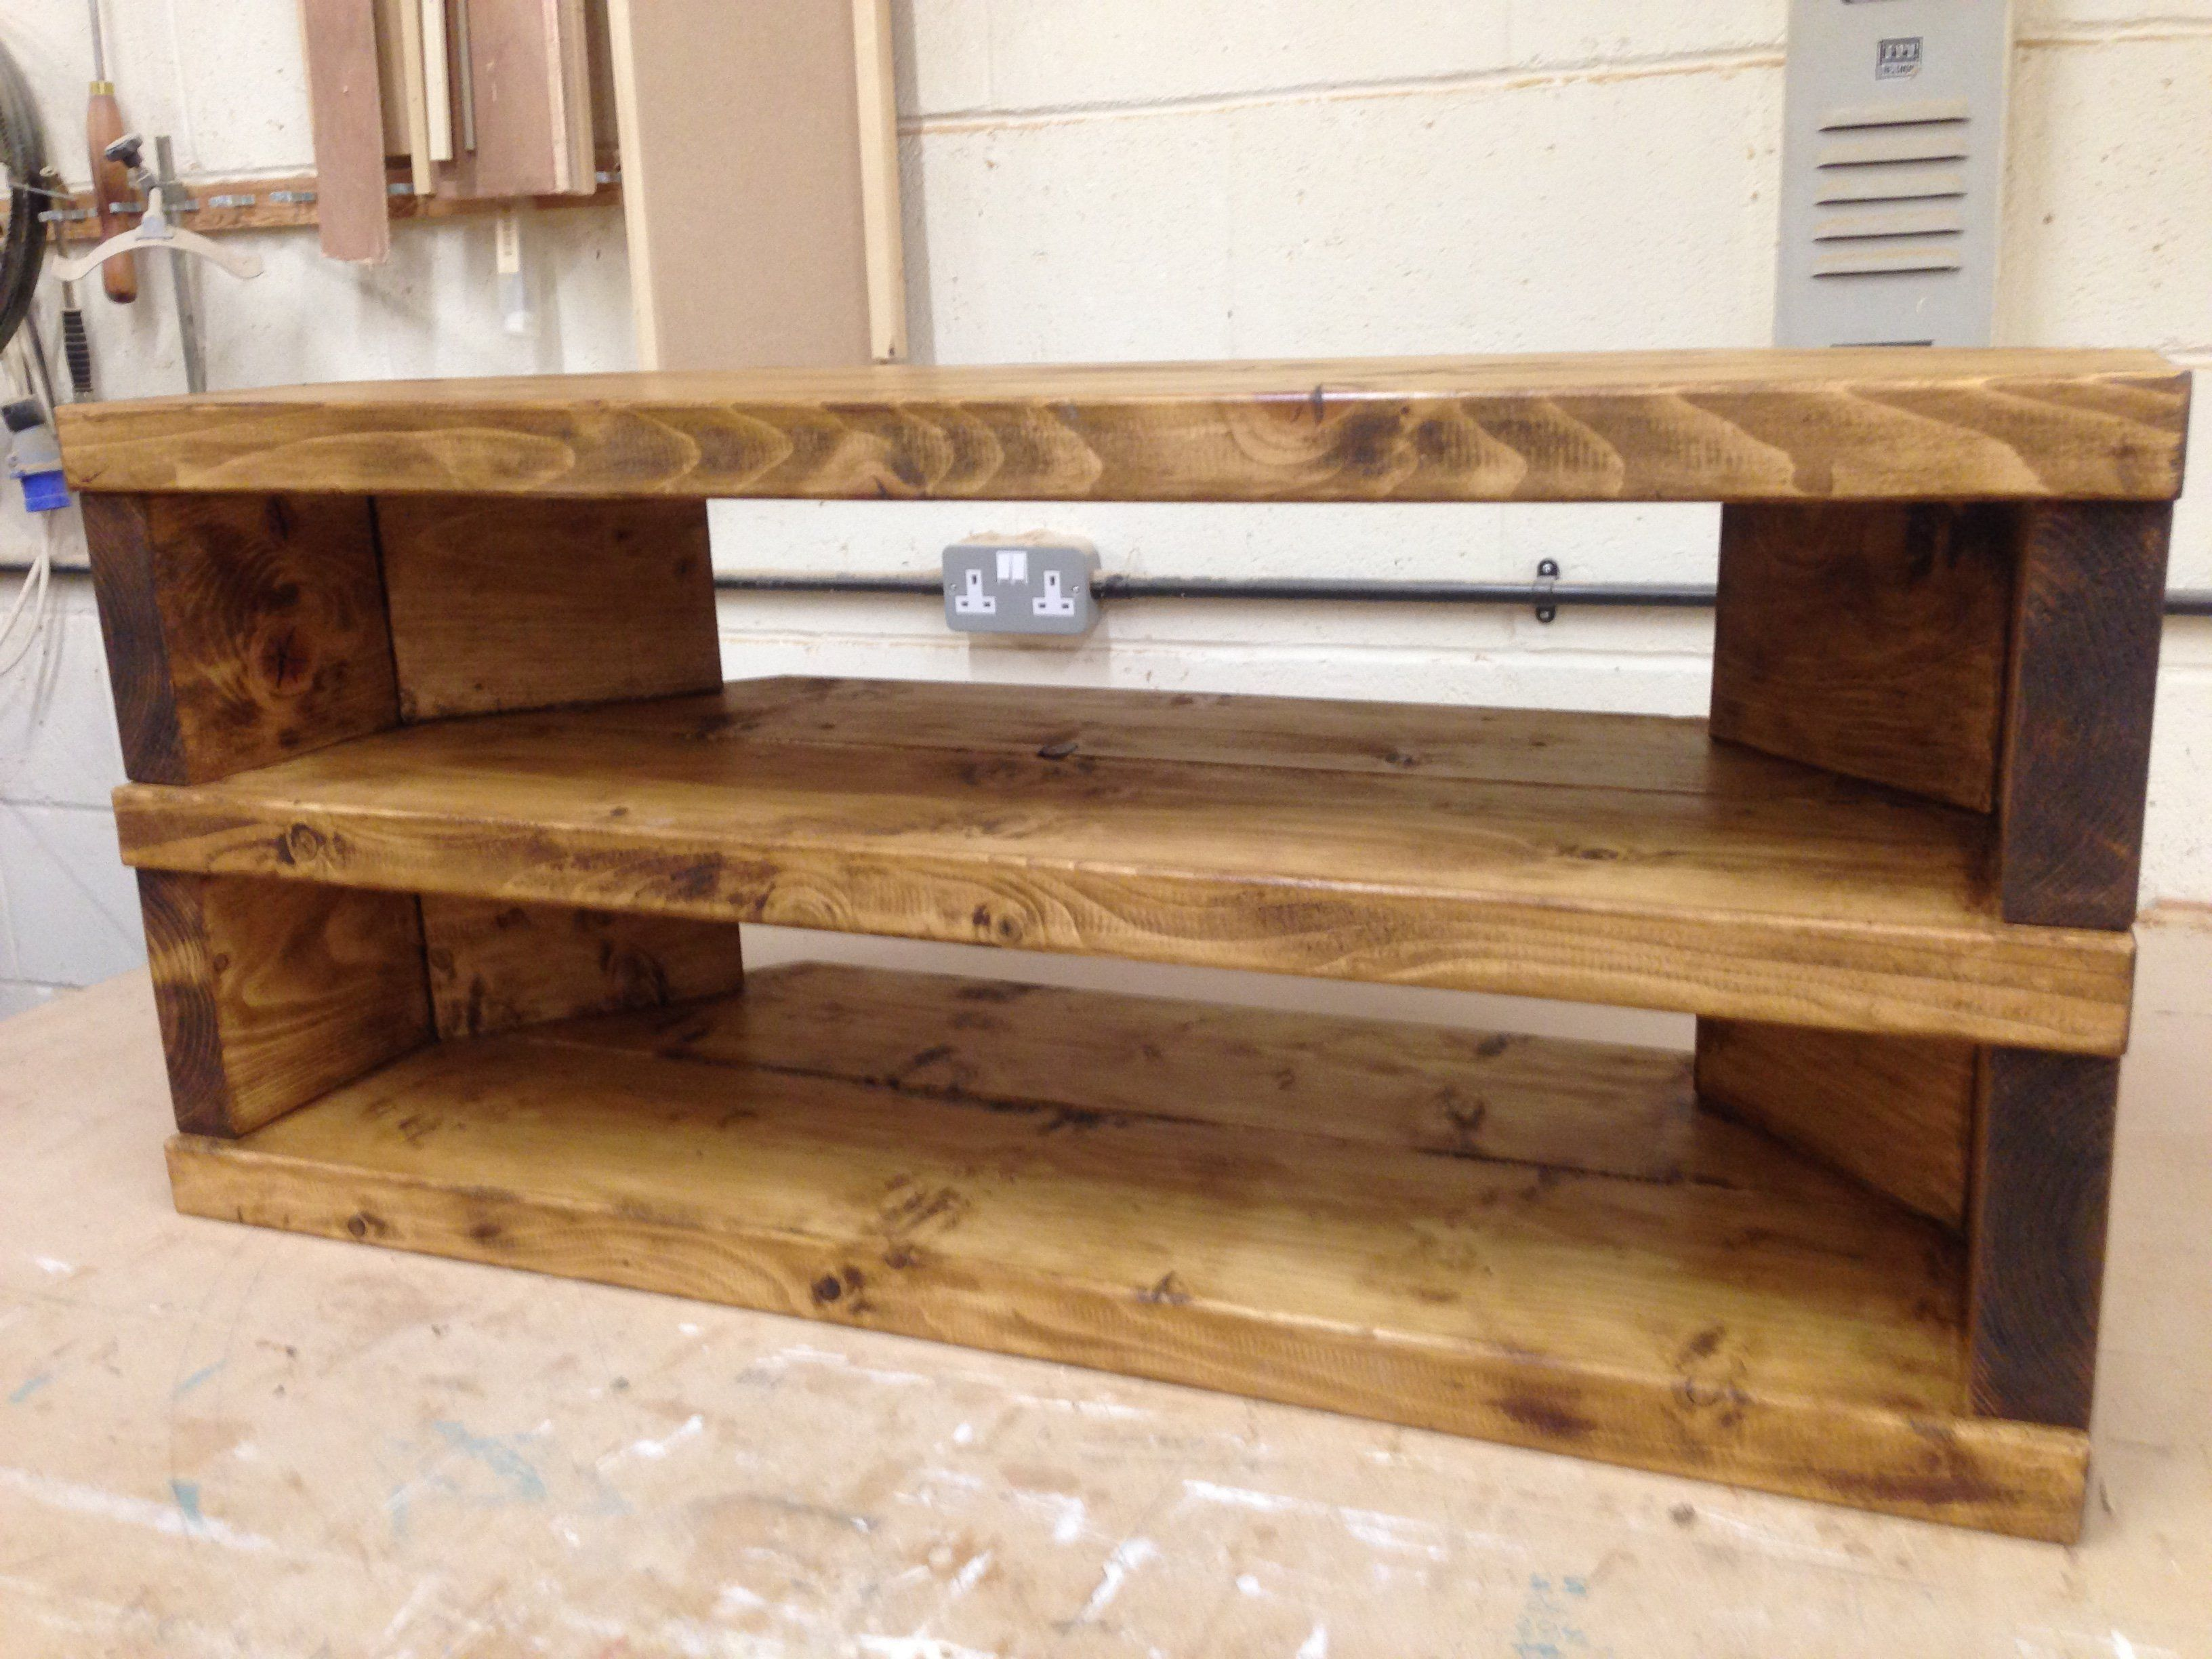 You Are Viewing My Handcrafted Rustic Corner Tv Stand Cabinet The Tv Stand In Constructed Using Traditional Methods From Solid Reclaimed Pine And Finished ¤ンテリア